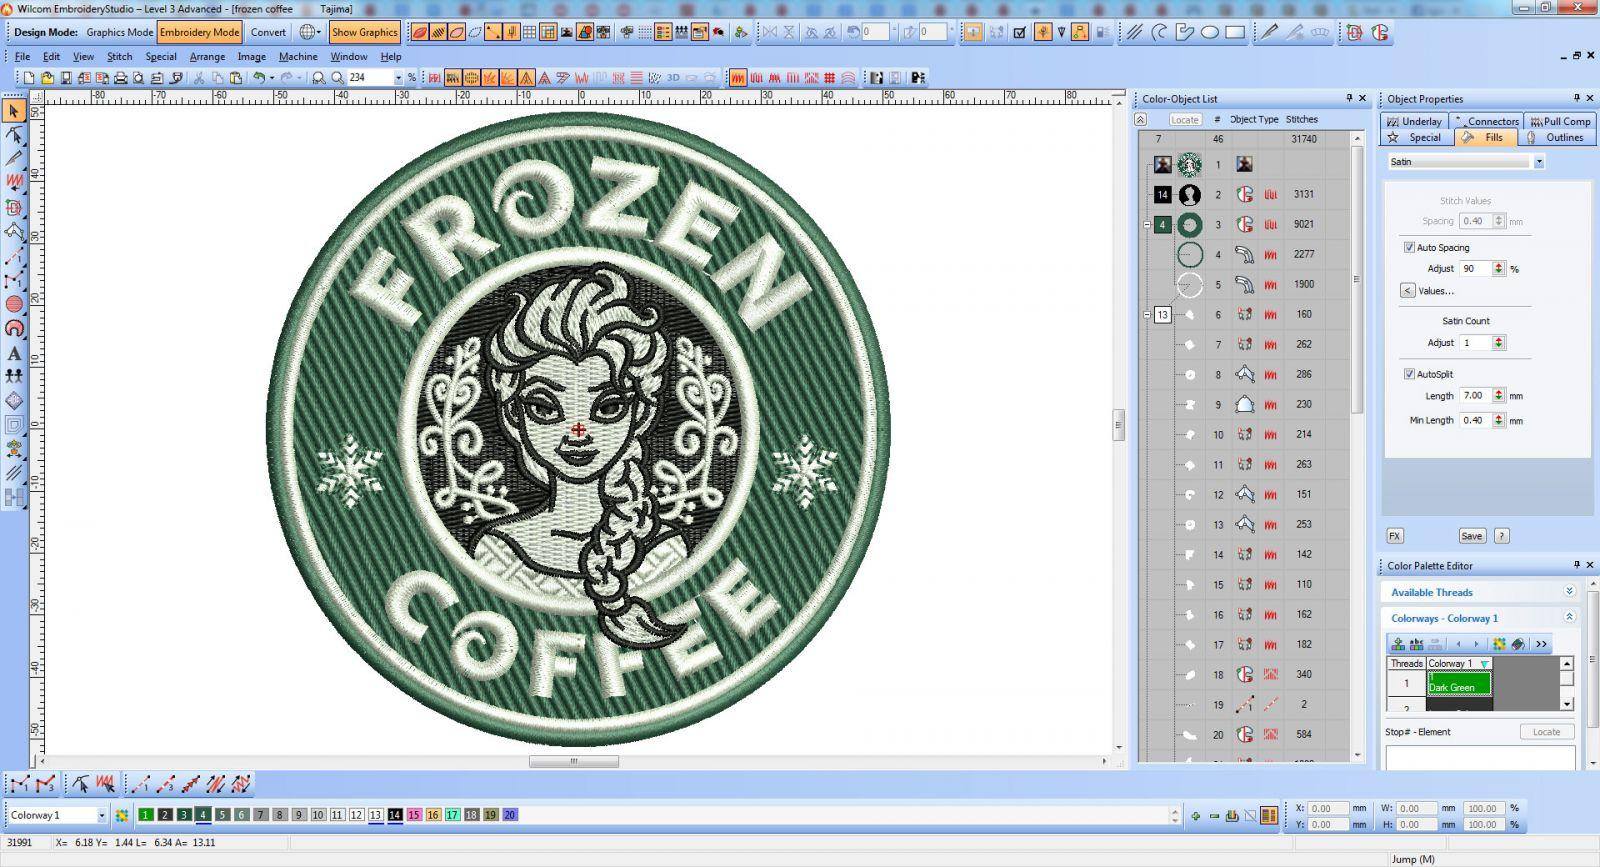 Frozen coffee screenshot